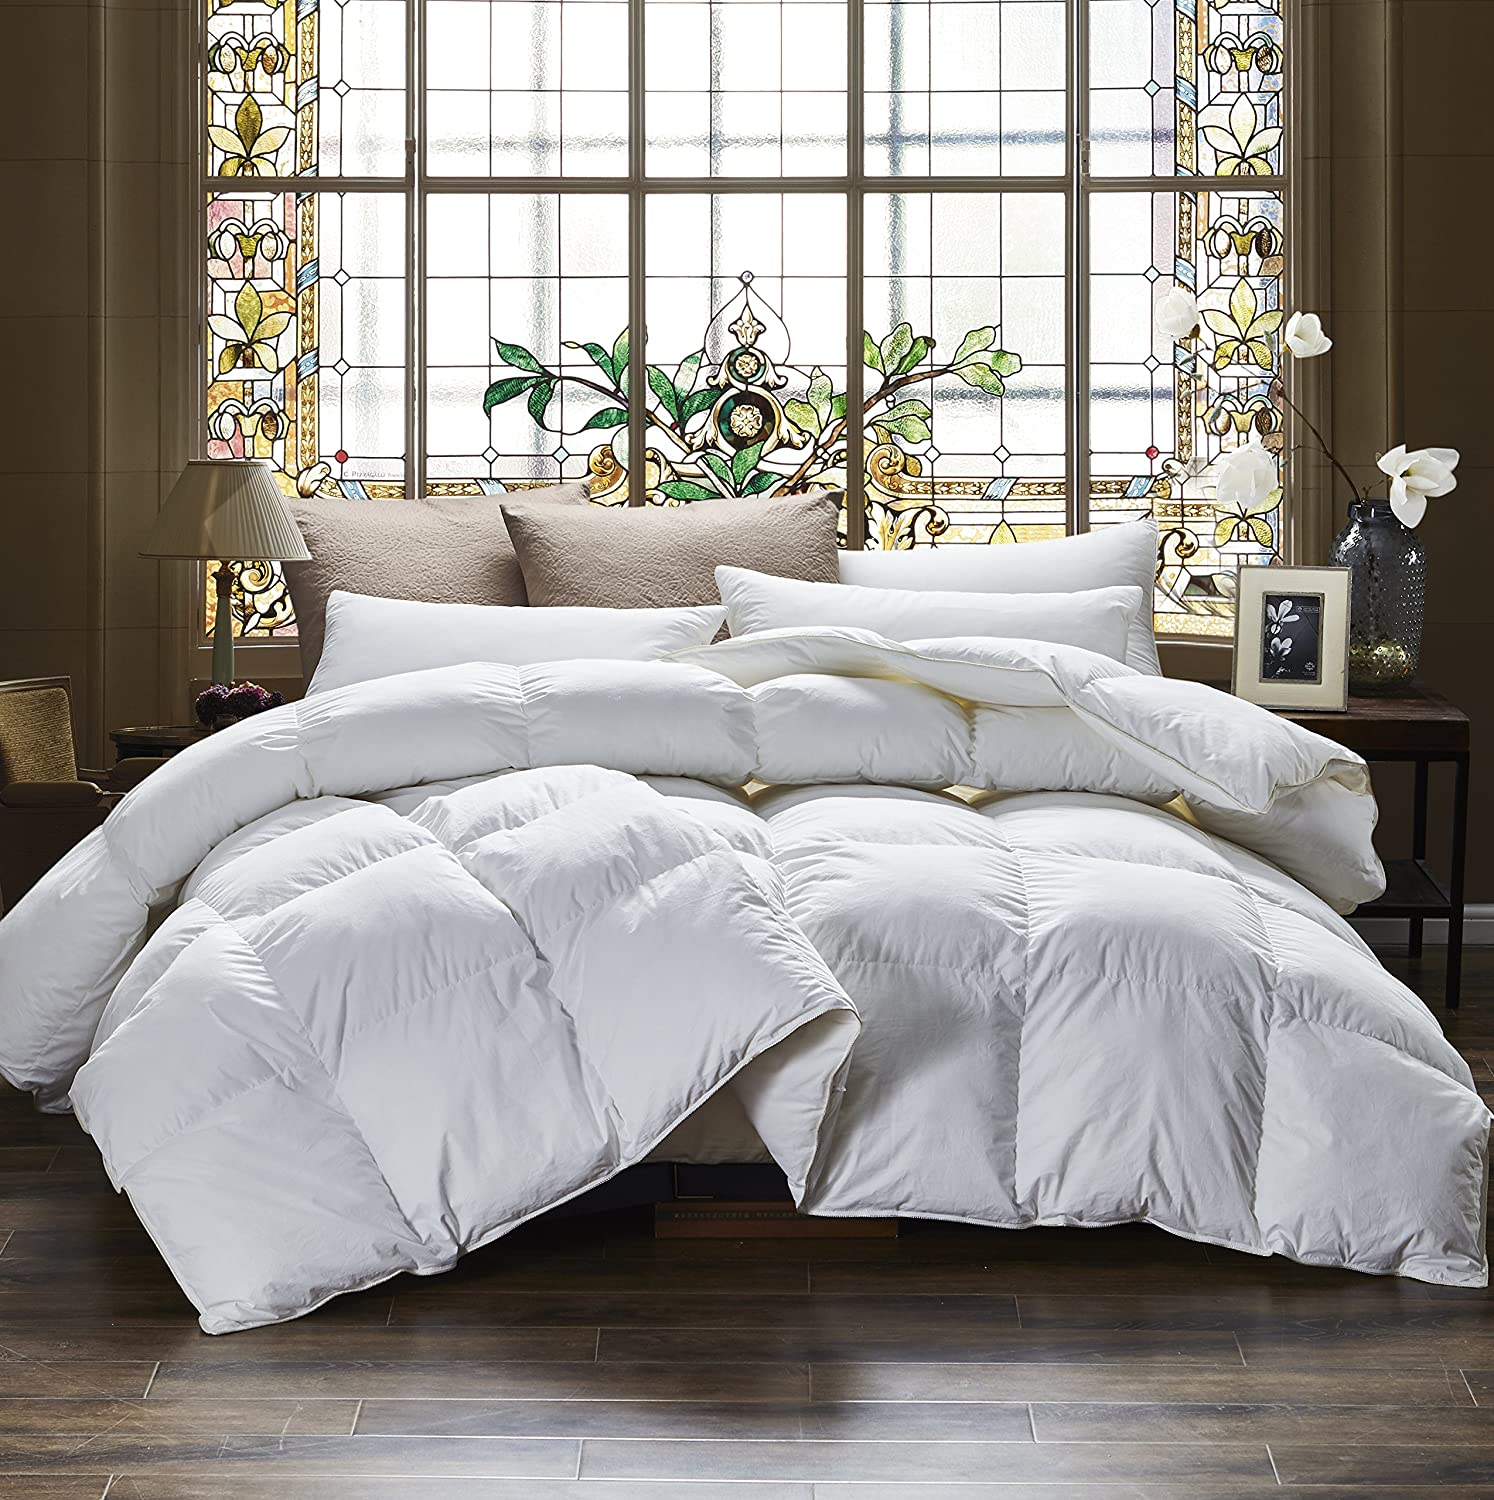 duvet halvorson ideas comforter house ingeflinte white blanket fluffy puffy big with